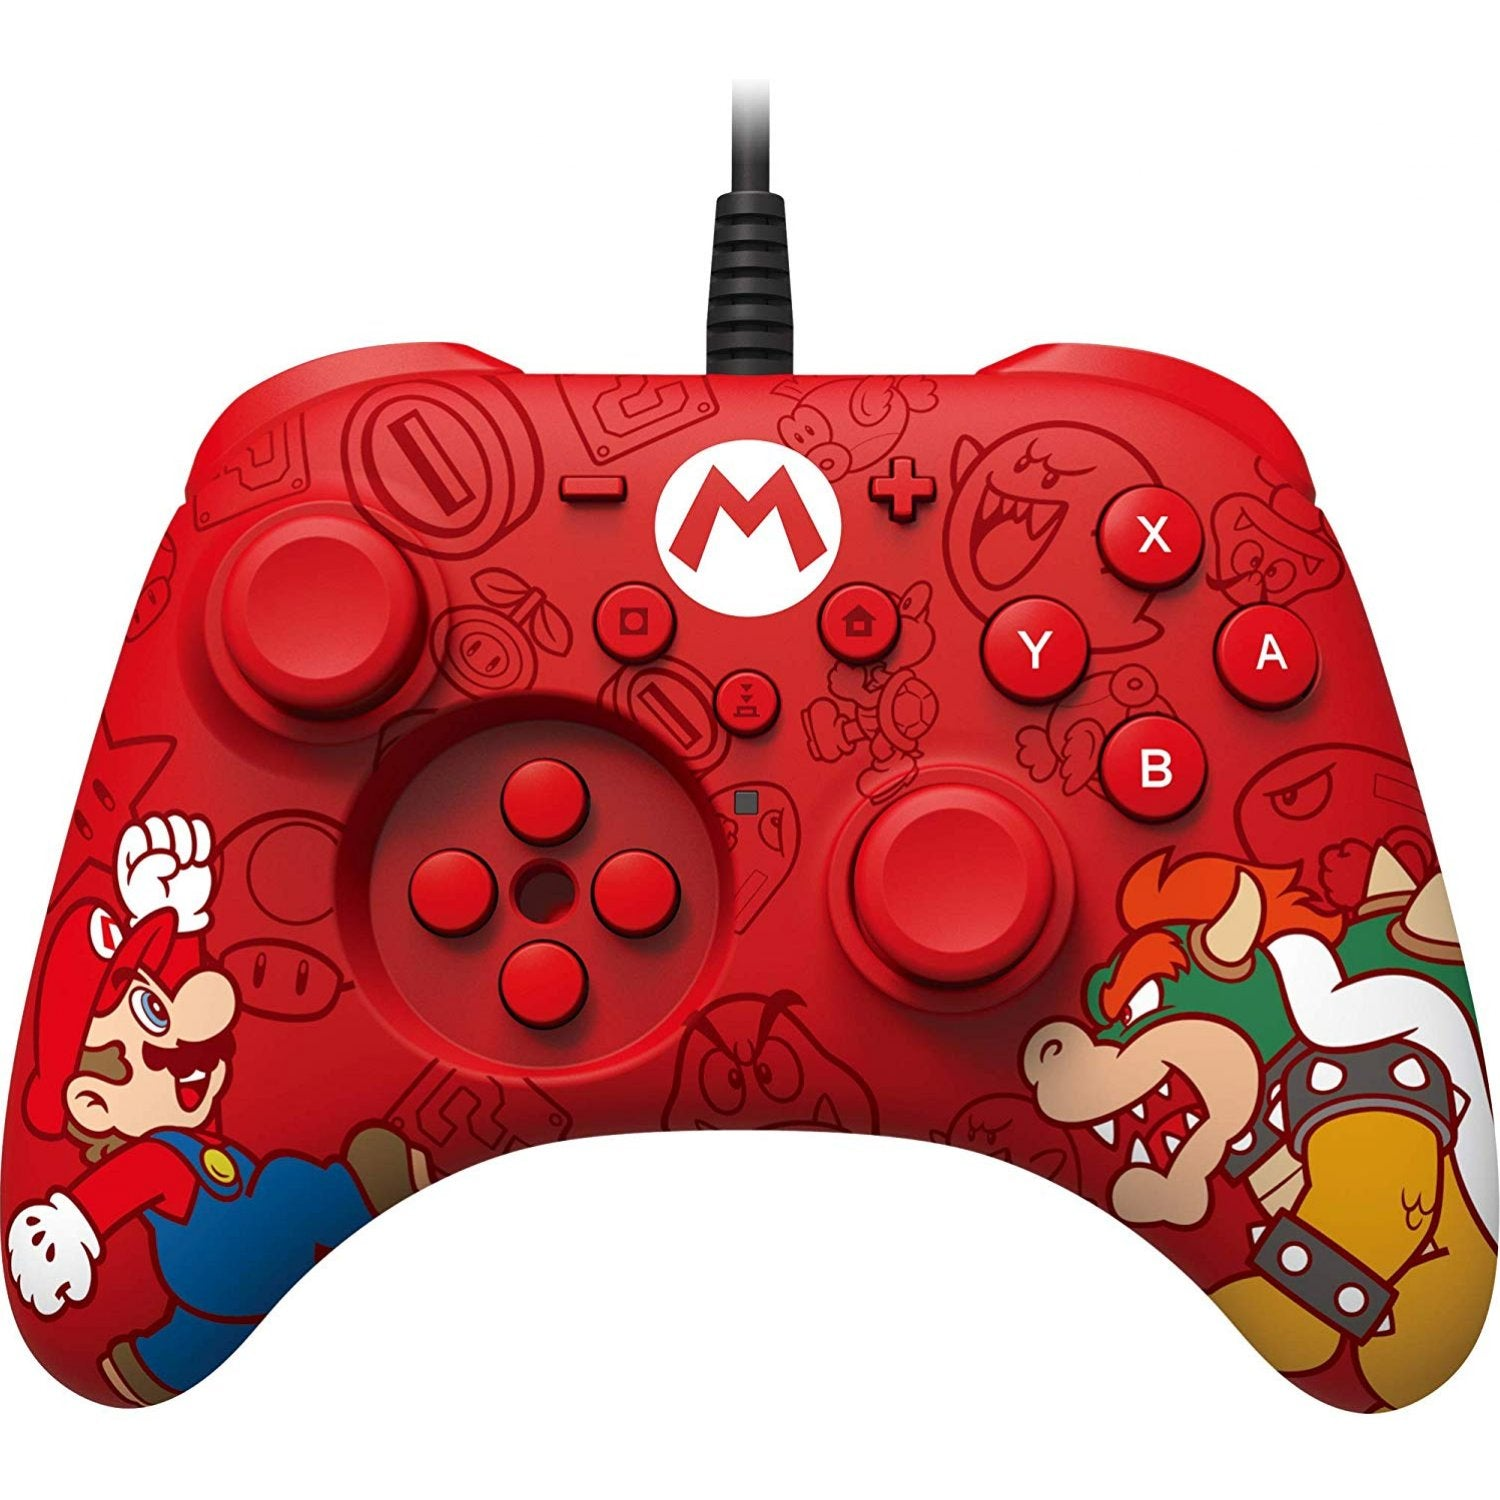 NSW-188A HORI Pad for Nintendo Switch Super Mario